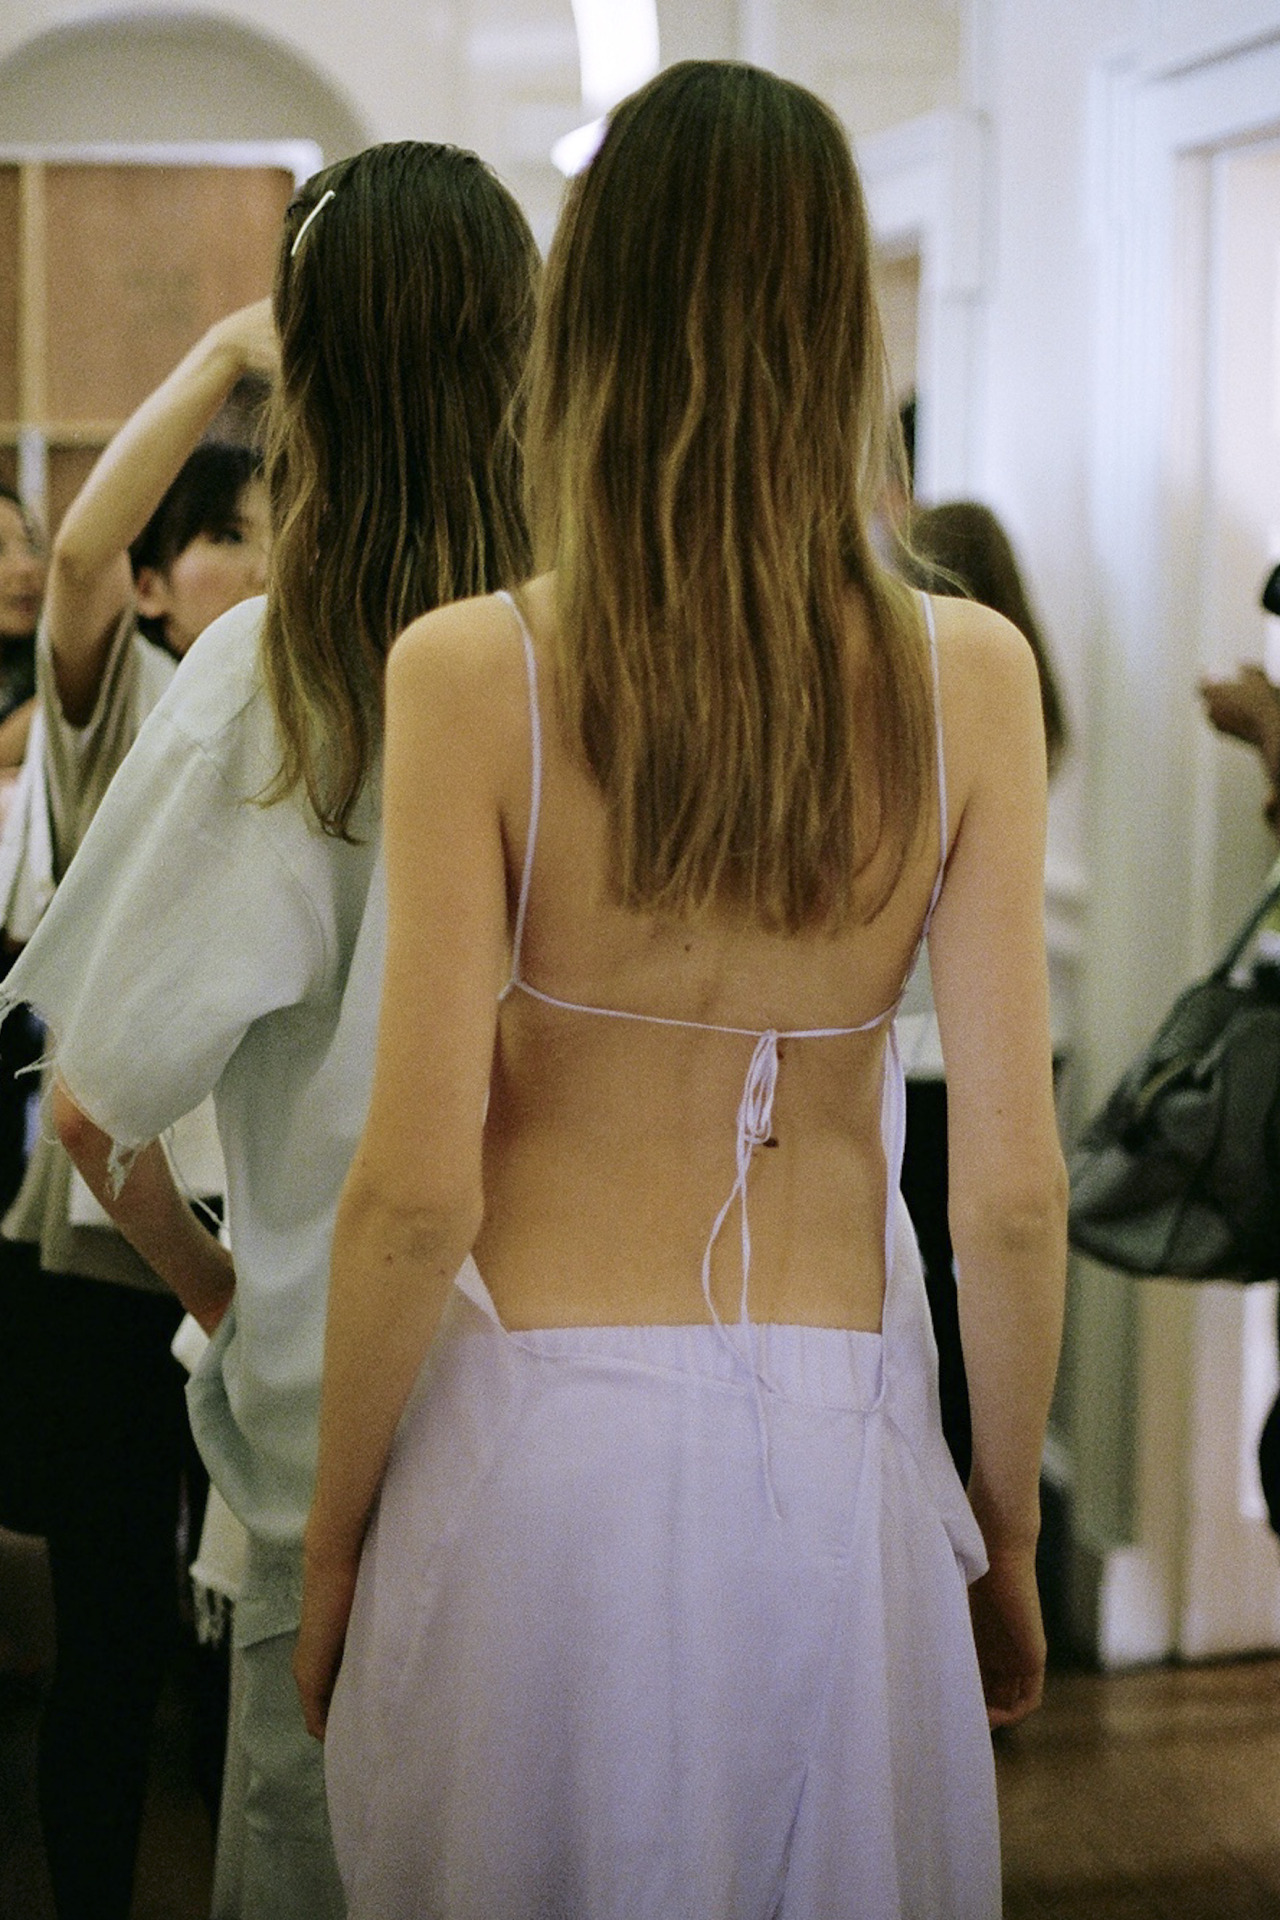 marquesalmeida:  Marques'Almeida SS13 Backstage Pictures by Sophia Aerts https://www.facebook.com/pages/Marques-Almeida/215041328567825?fref=ts